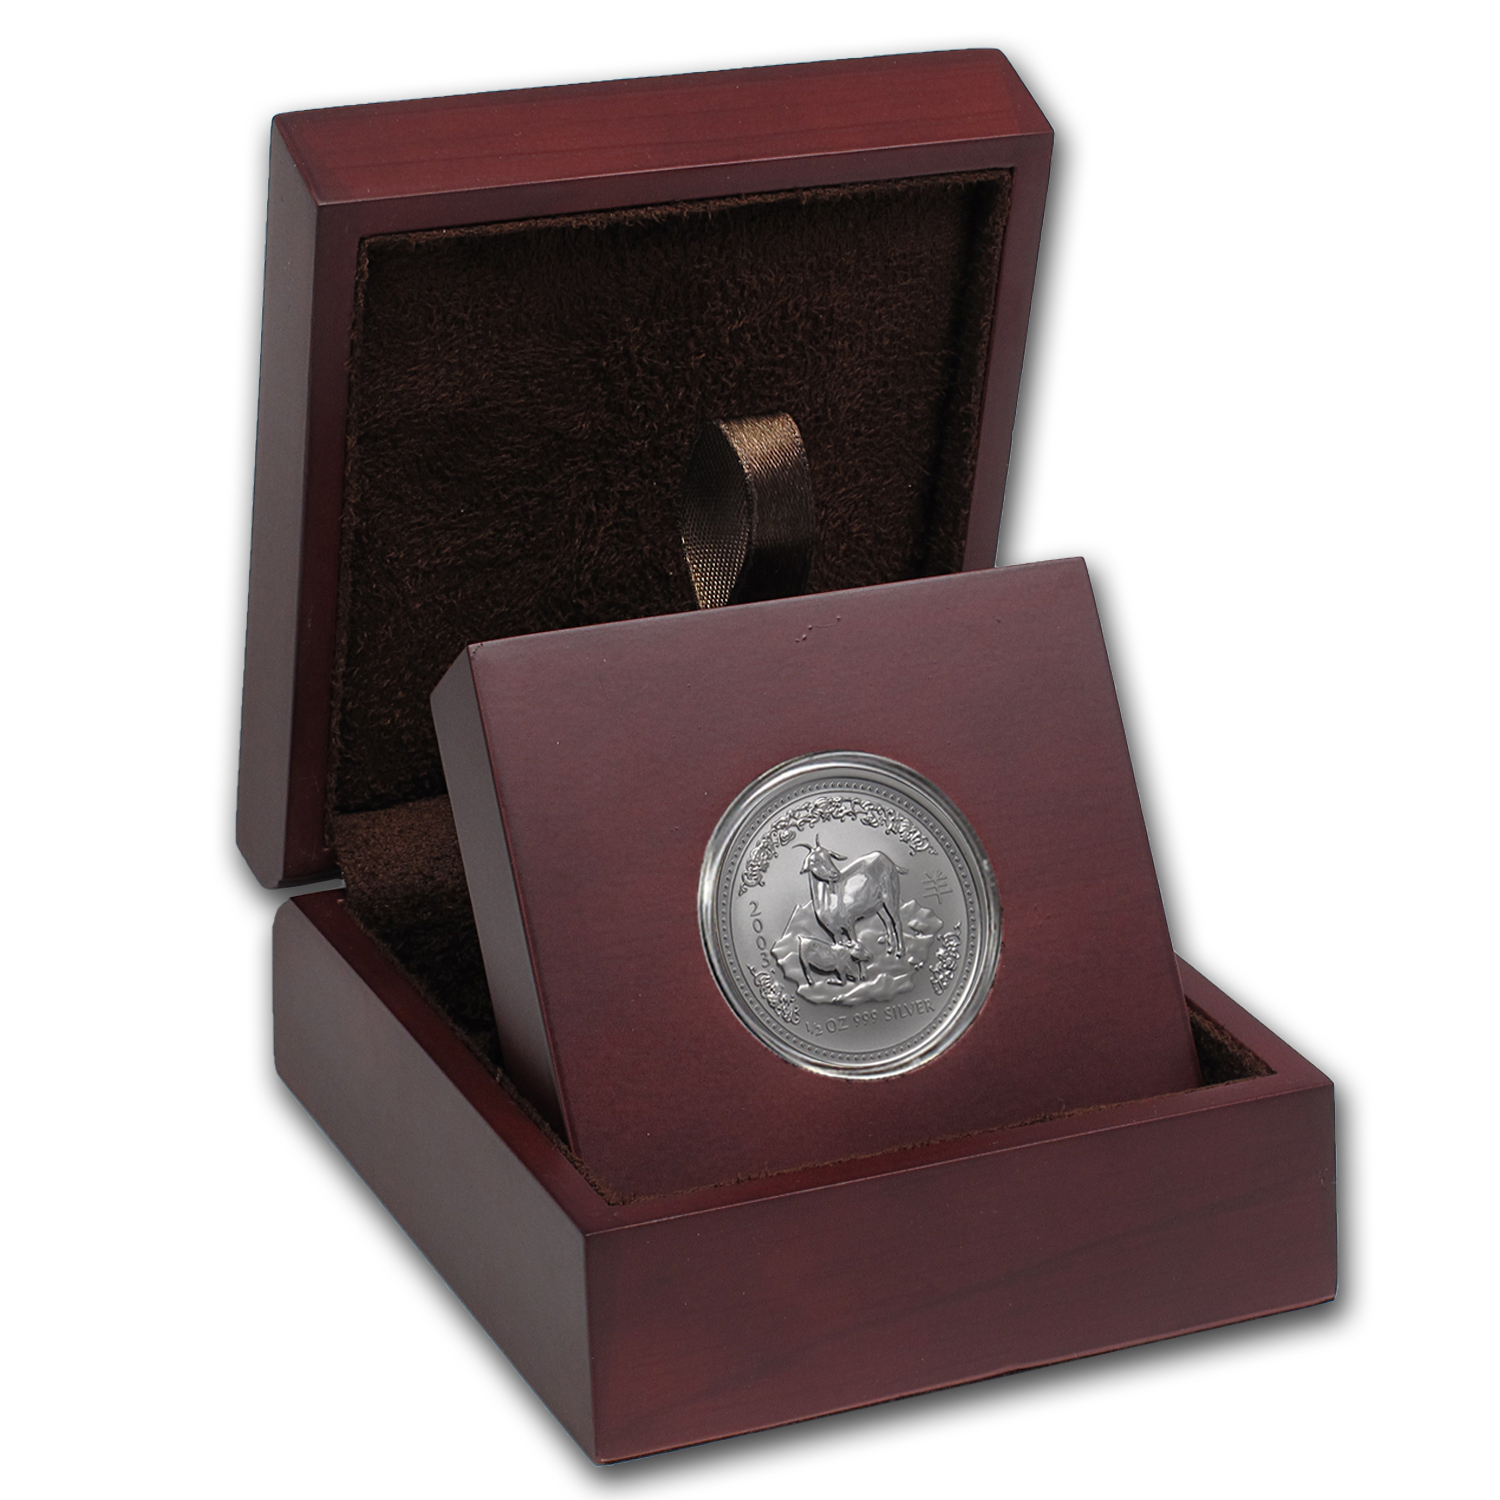 APMEX Wood Gift Box - 1/2 oz Perth Mint Silver Coin Series 1